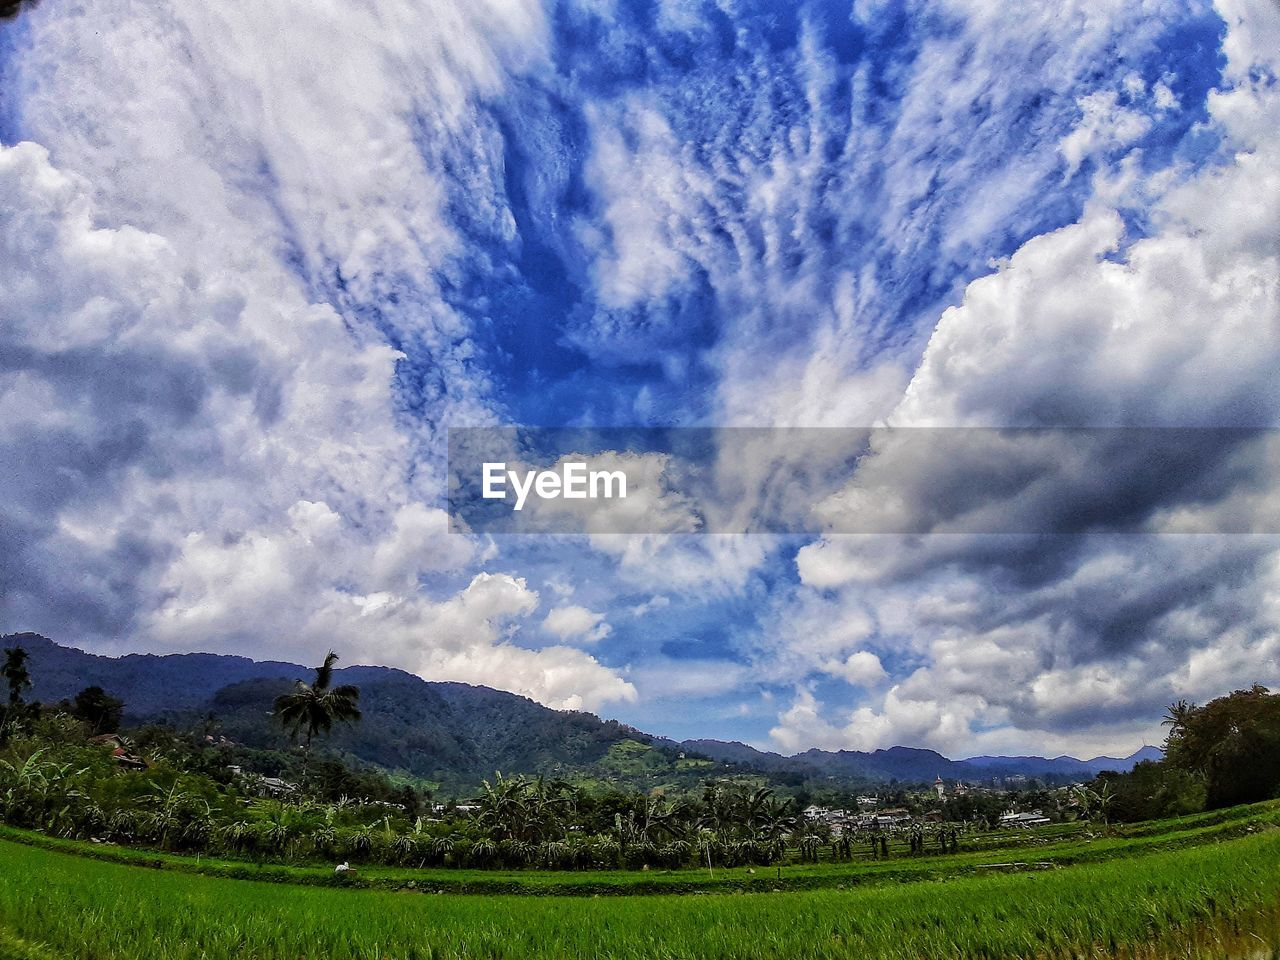 cloud - sky, sky, beauty in nature, scenics - nature, environment, tranquil scene, landscape, land, plant, tranquility, nature, field, day, no people, tree, mountain, non-urban scene, rural scene, green color, outdoors